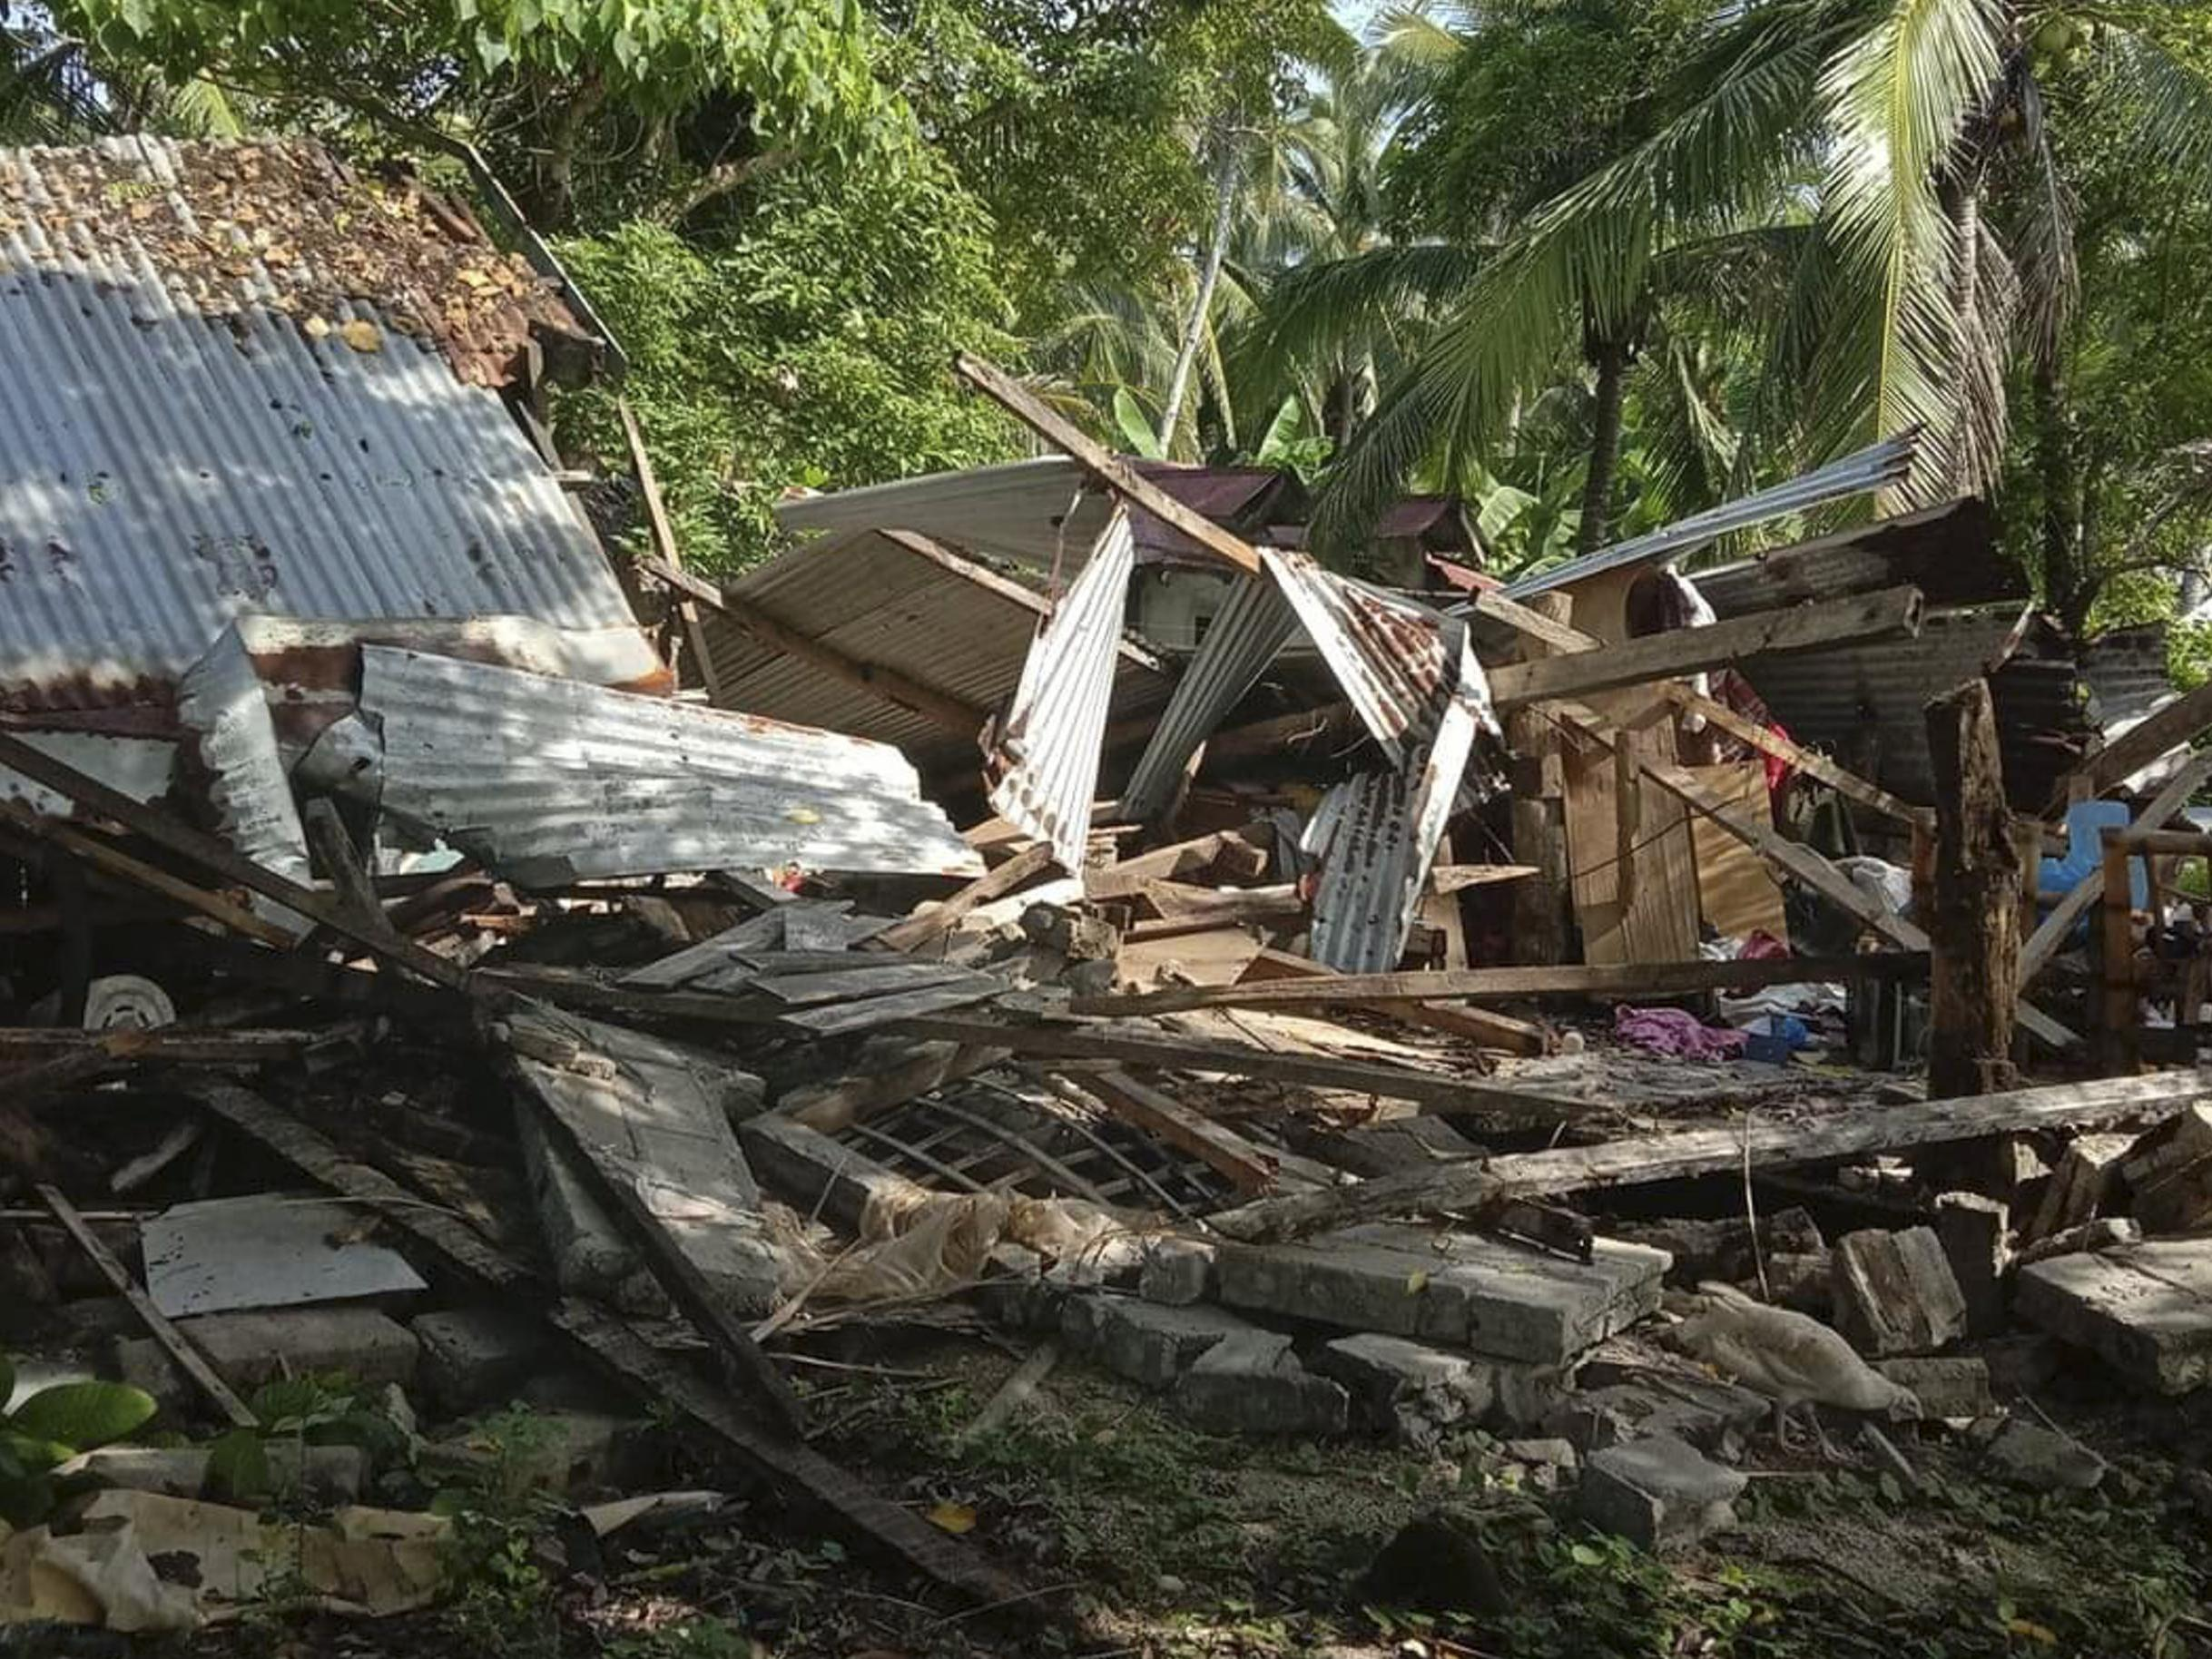 Philippines earthquake: At least one dead after 6.6 magnitude tremor | The Independent